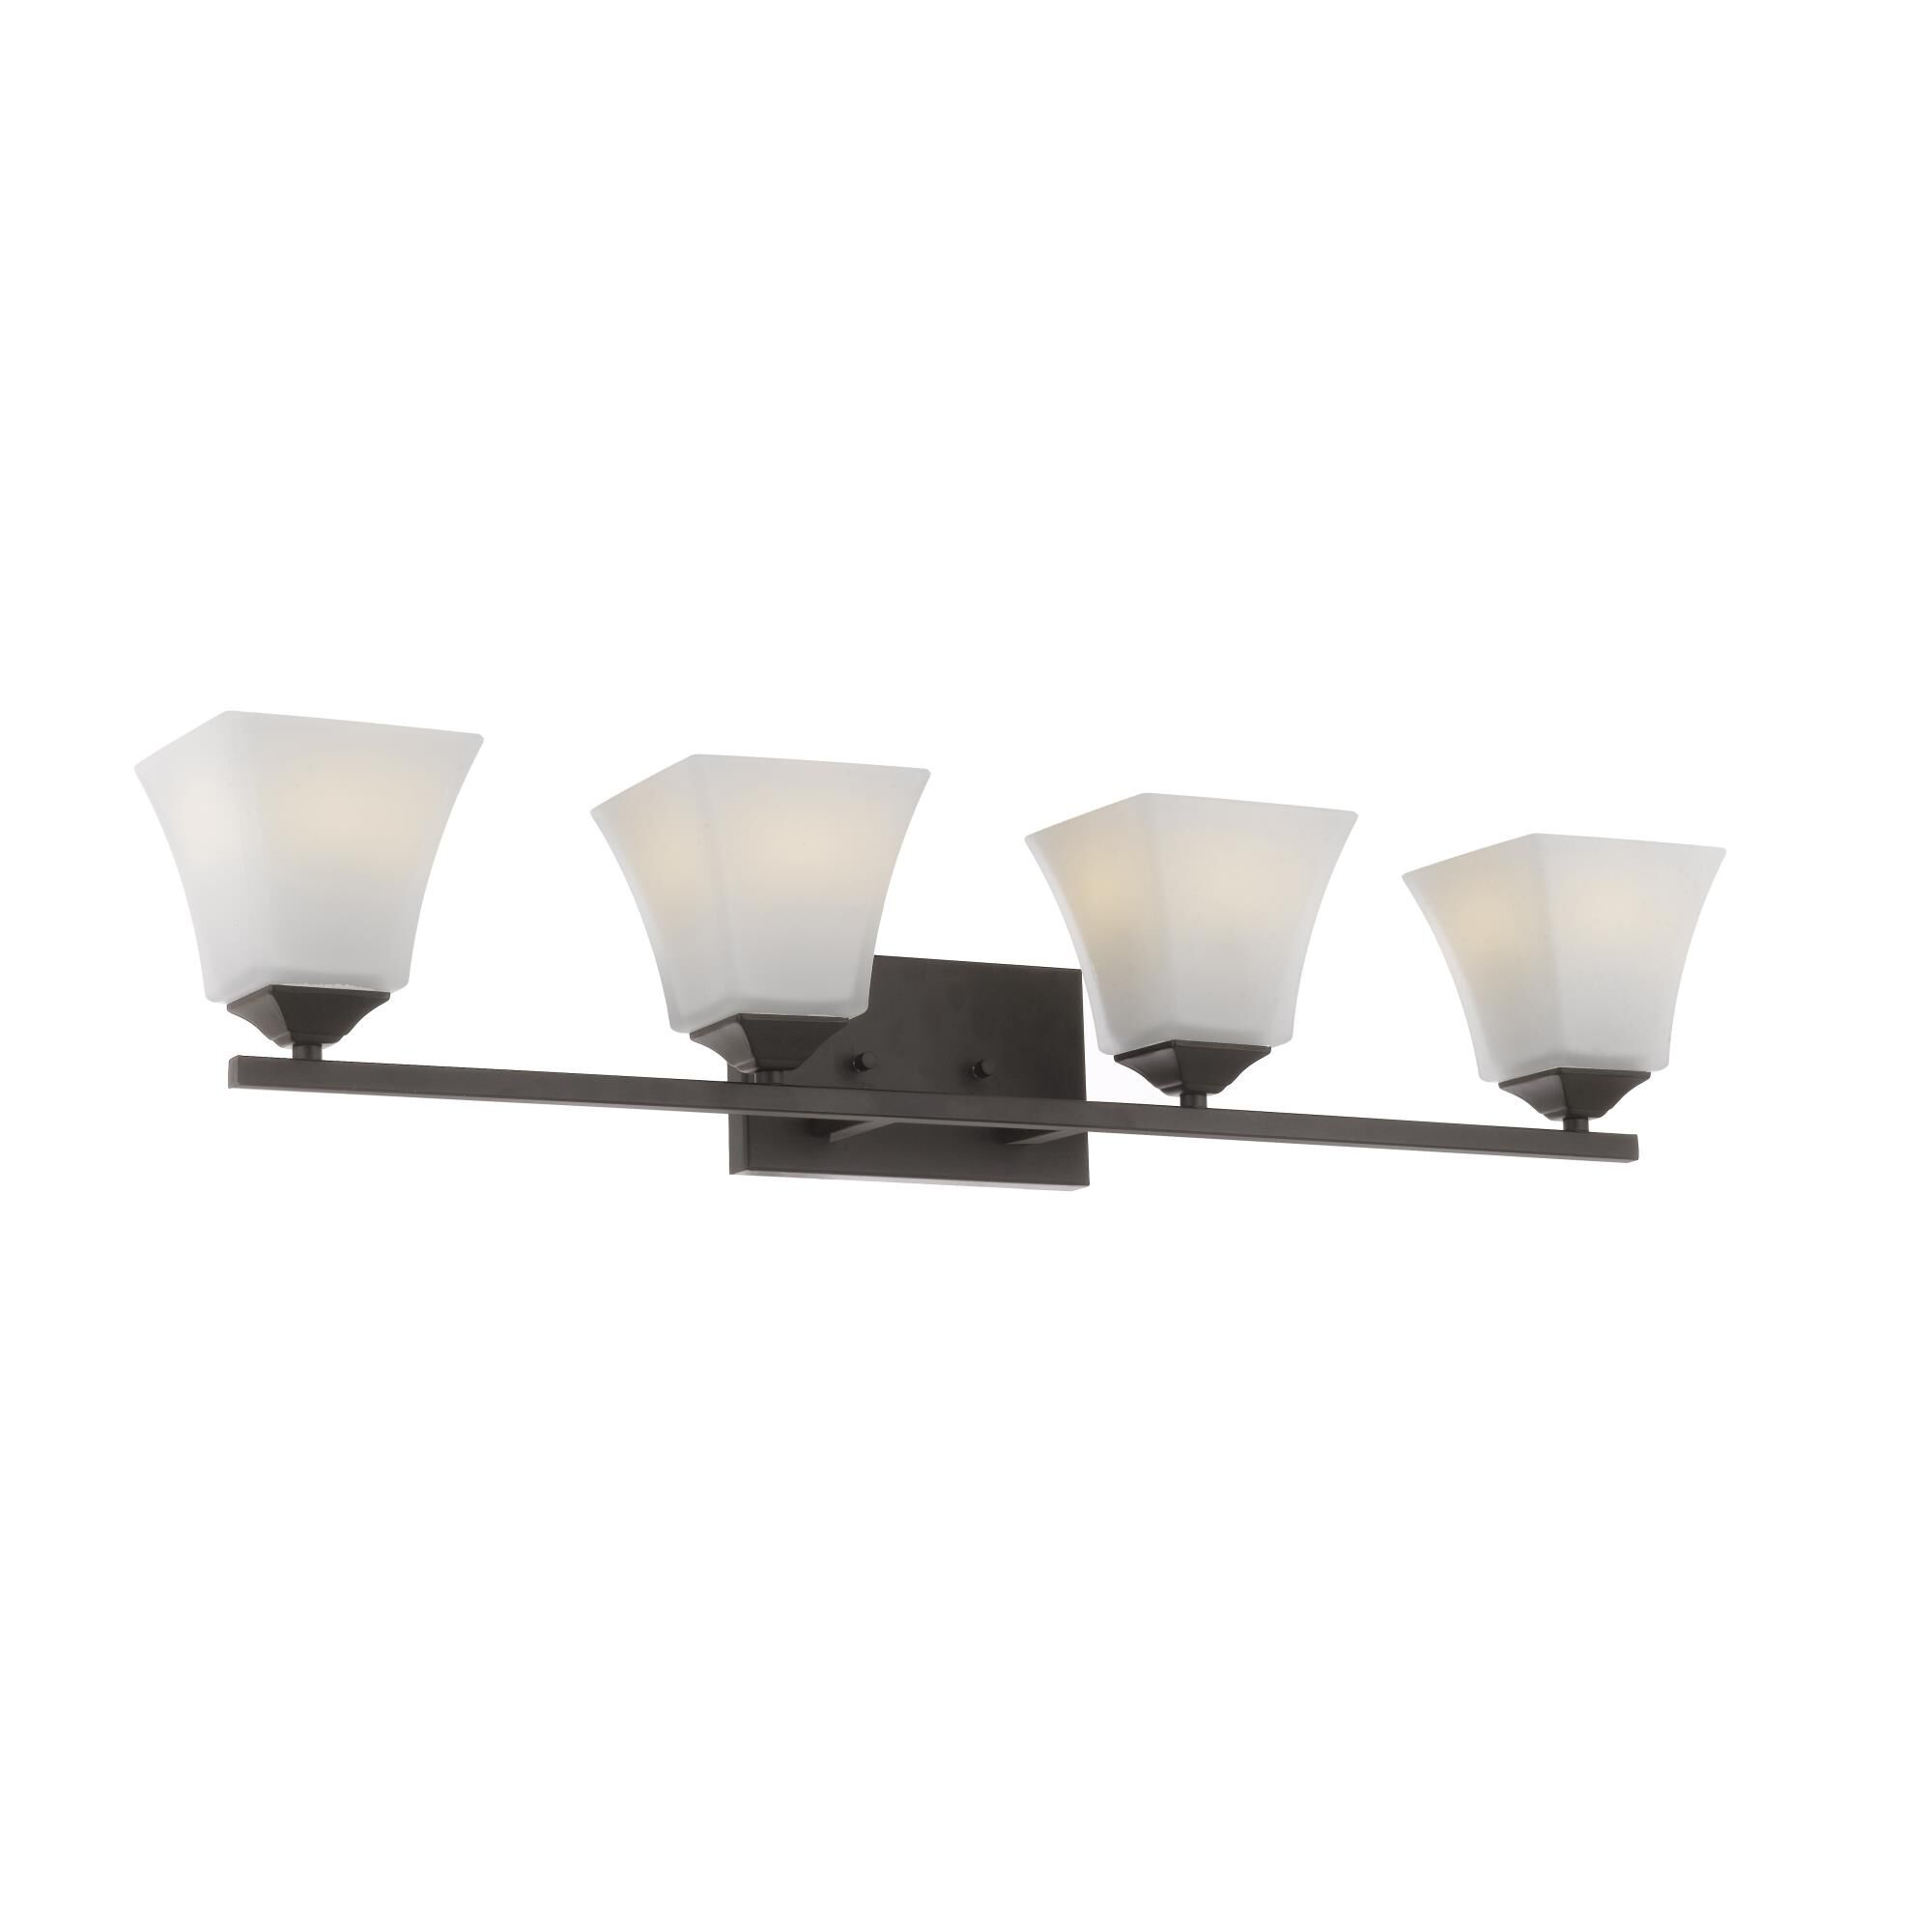 Batalion Hillair 33 Inch Wall Sconce Hillair - P1580wb4orb - Transitional Wall Sconce